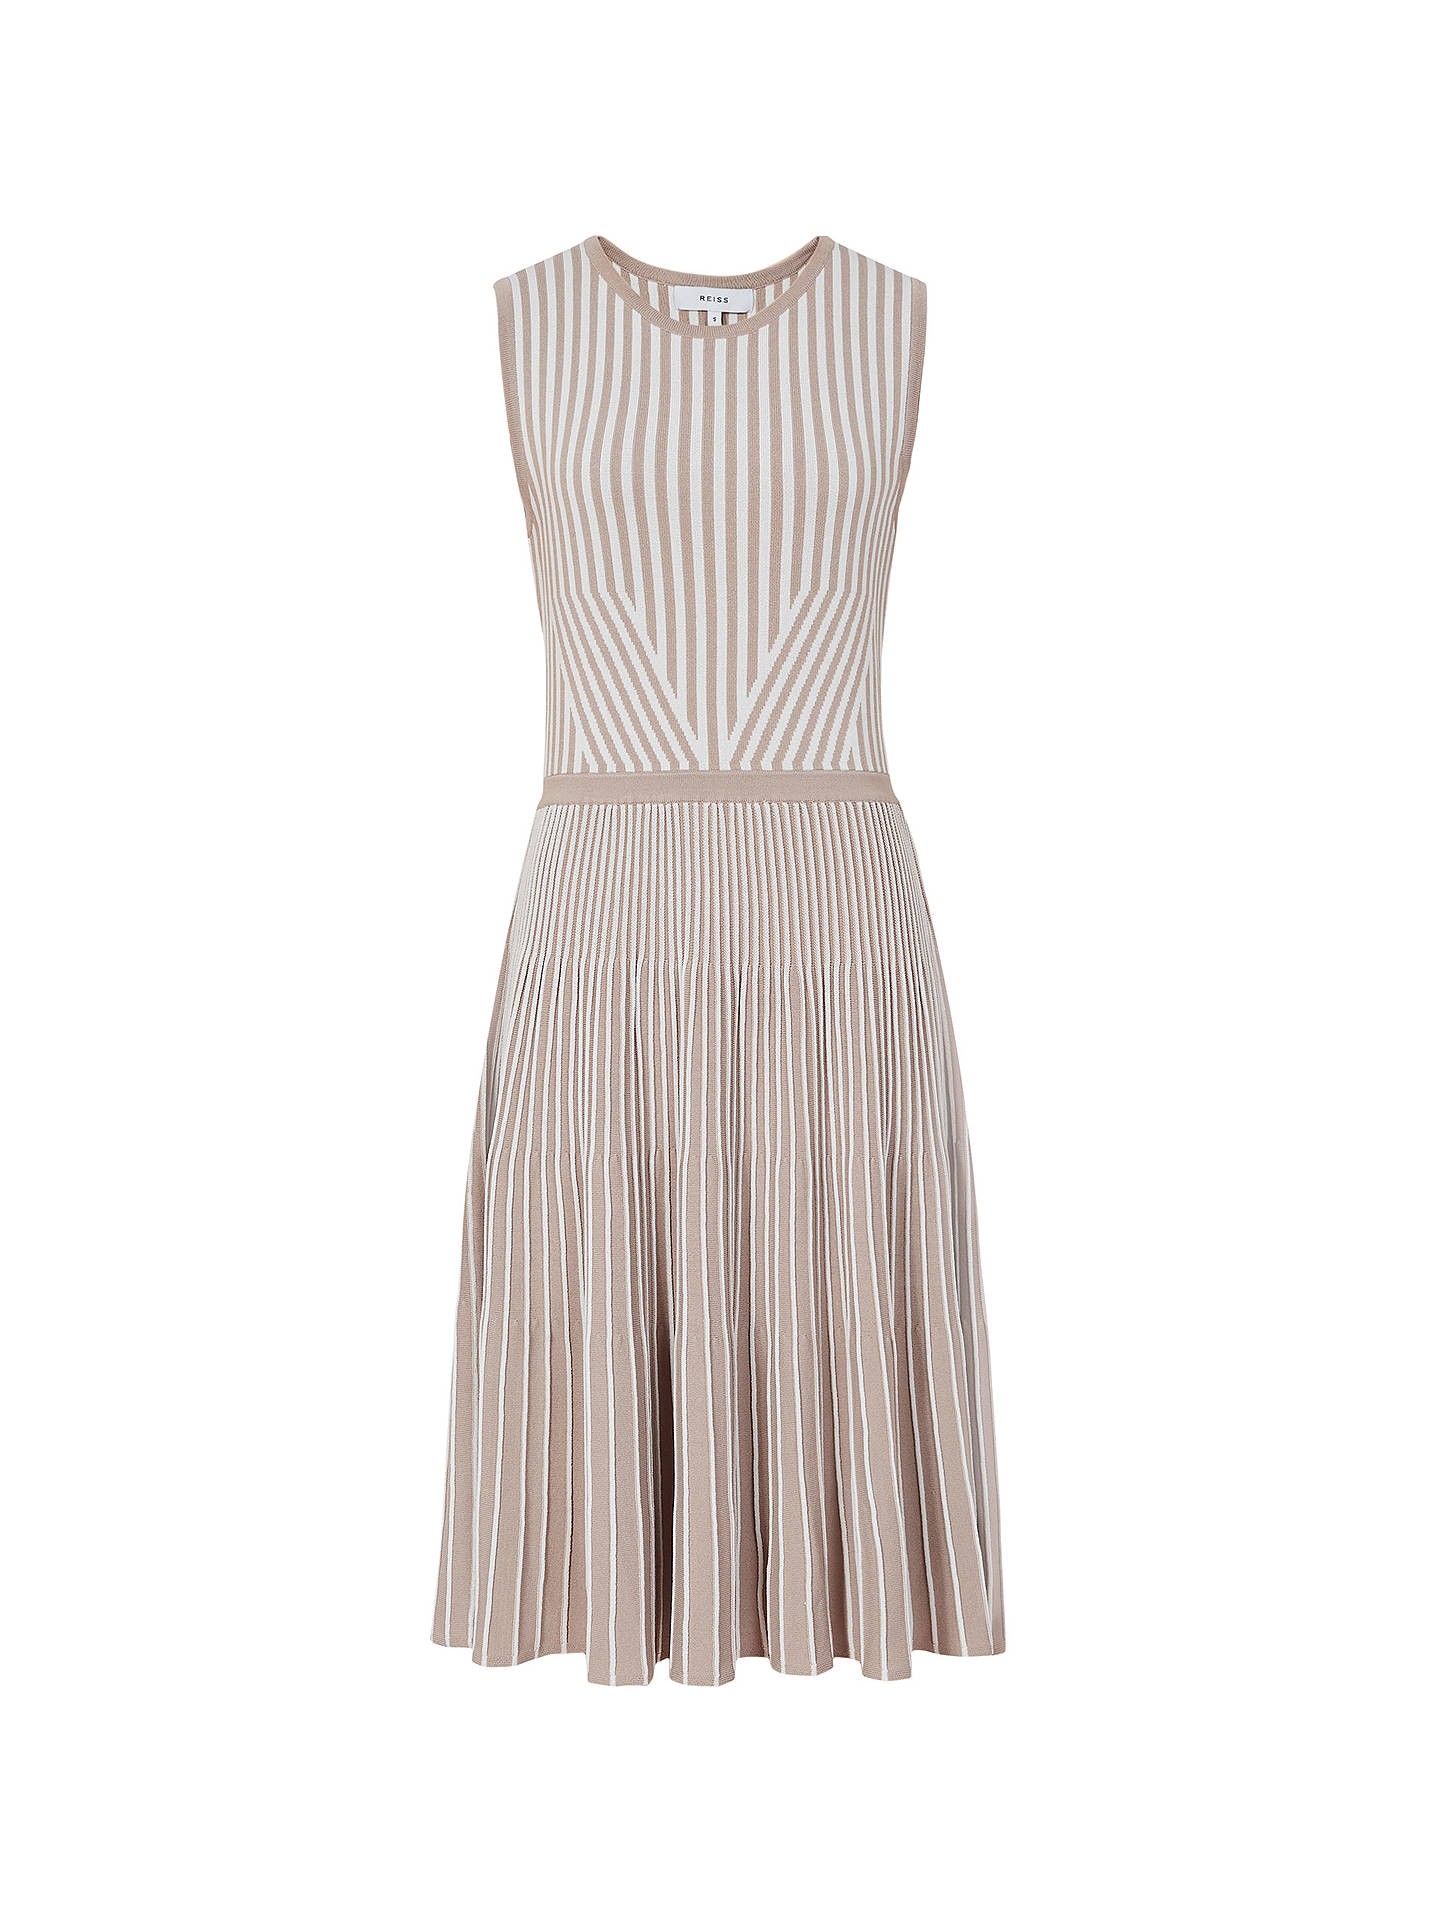 Buy Reiss Becky Striped Knitted Dress, Stone, XS Online at johnlewis.com